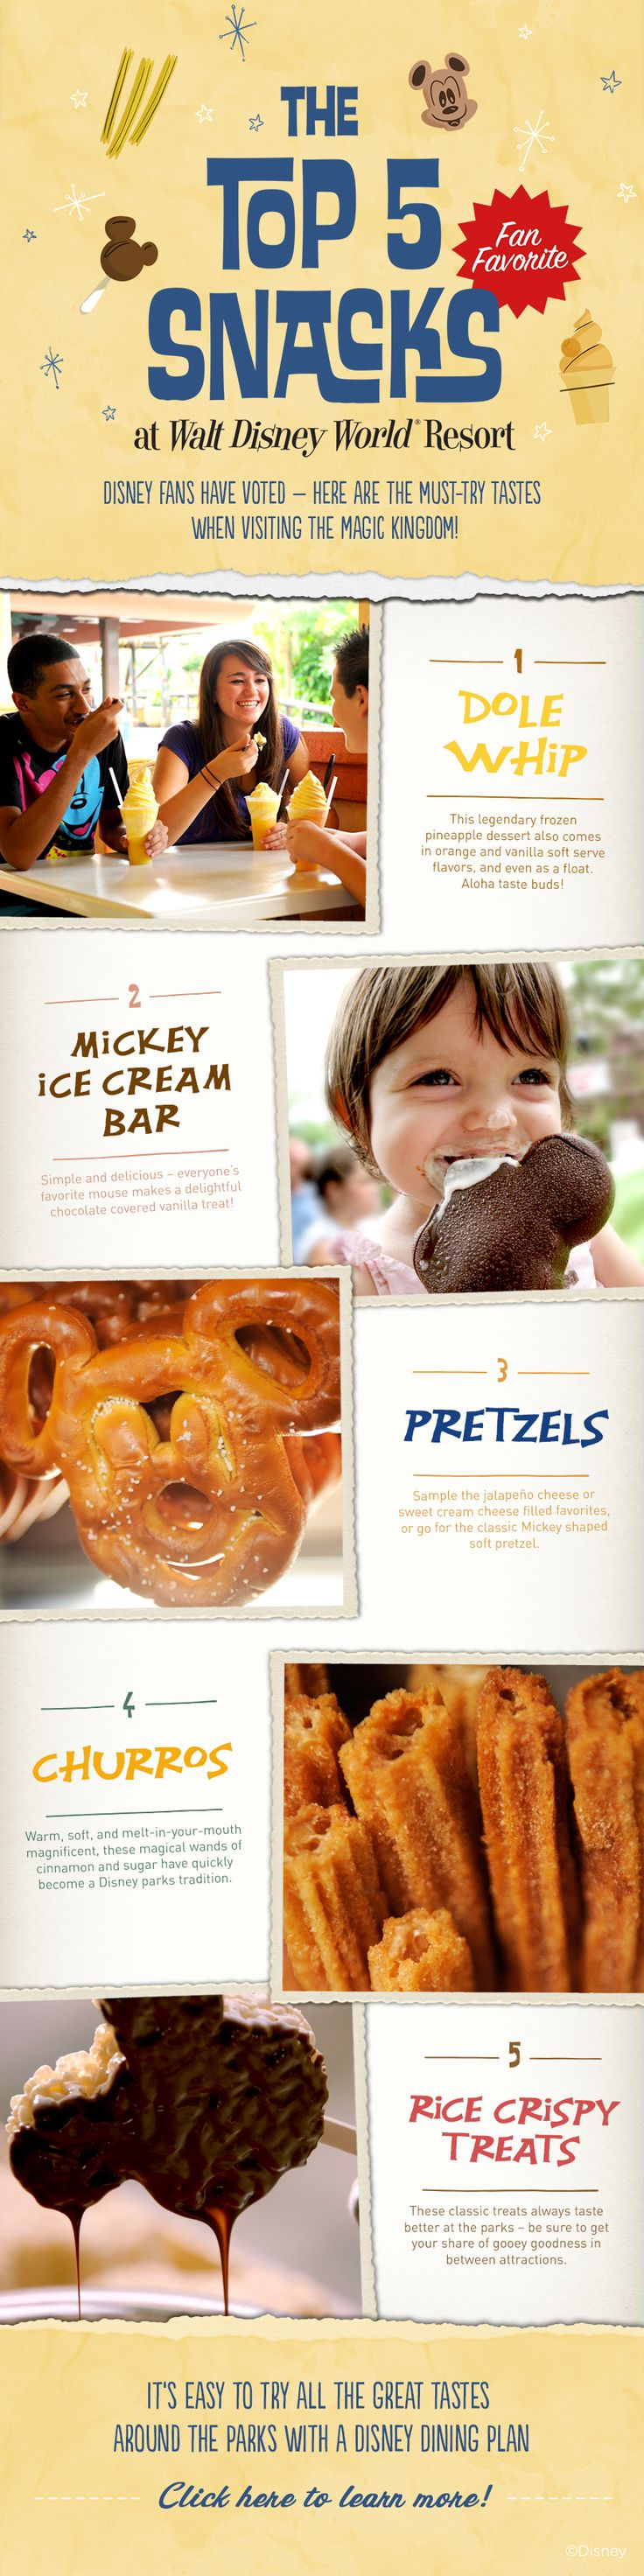 Make sure to try these snacks on your next Walt Disney World vacay #Disney #snacks